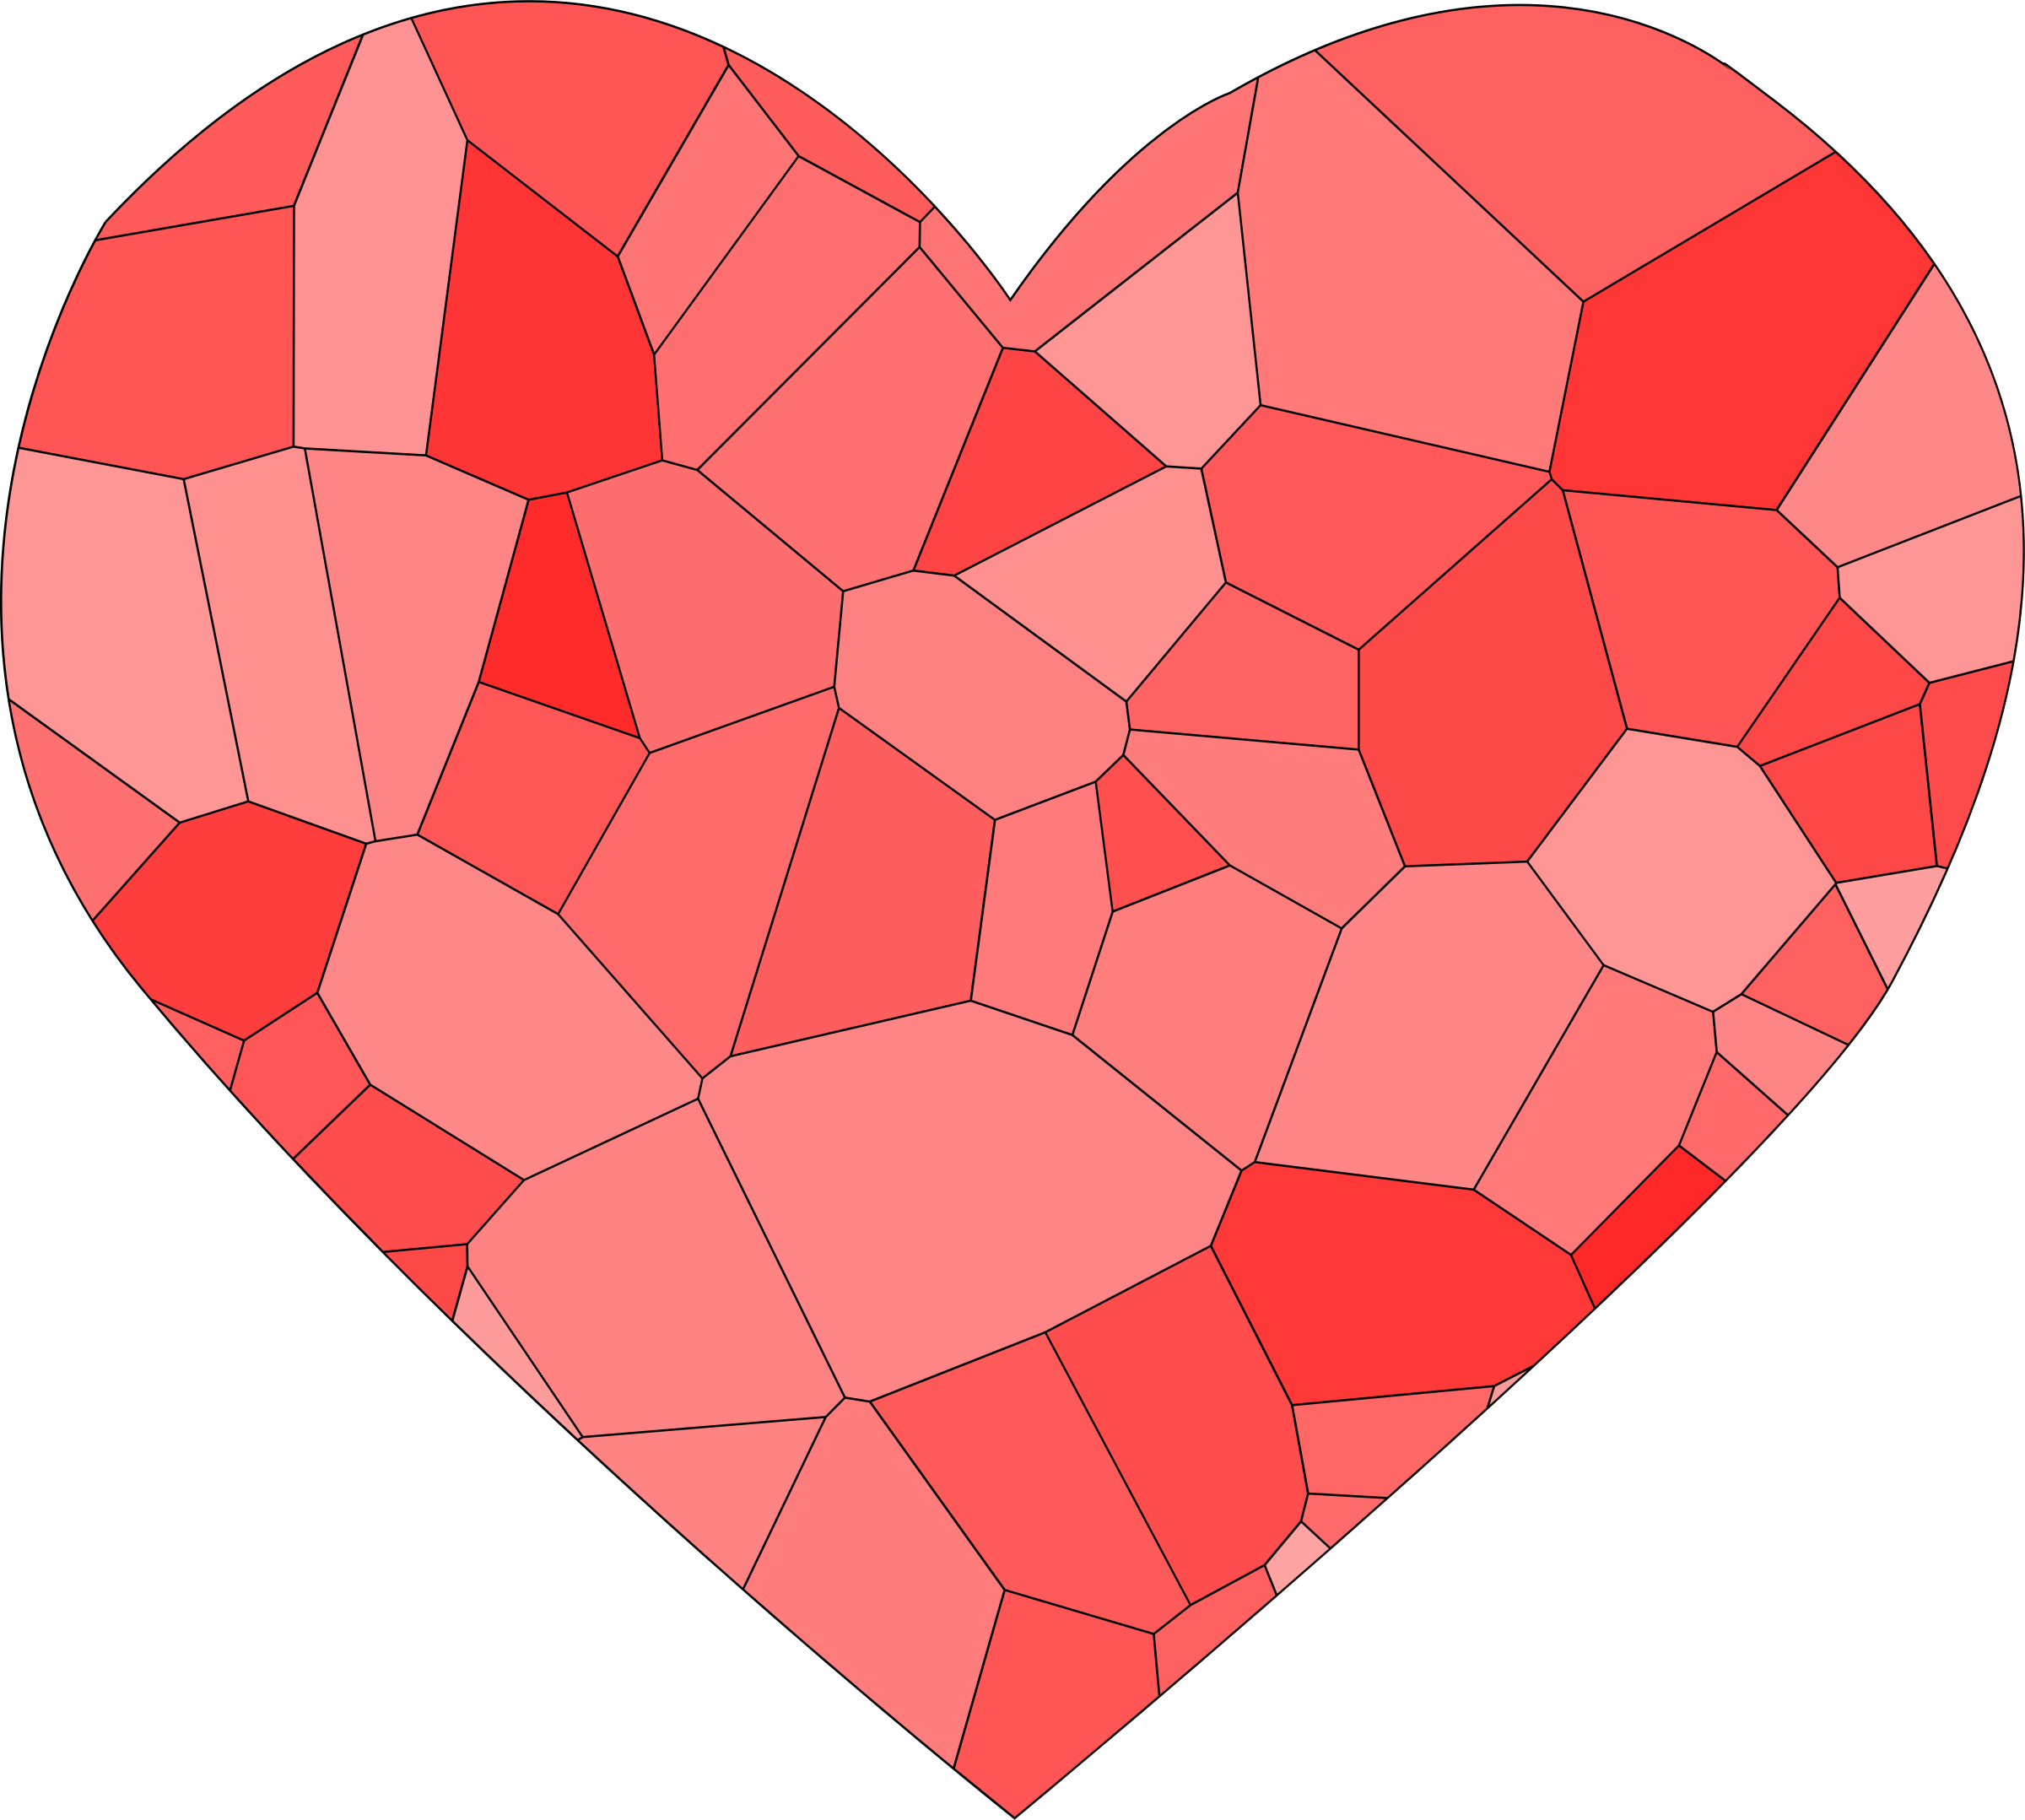 Voronoi heart by Firkin